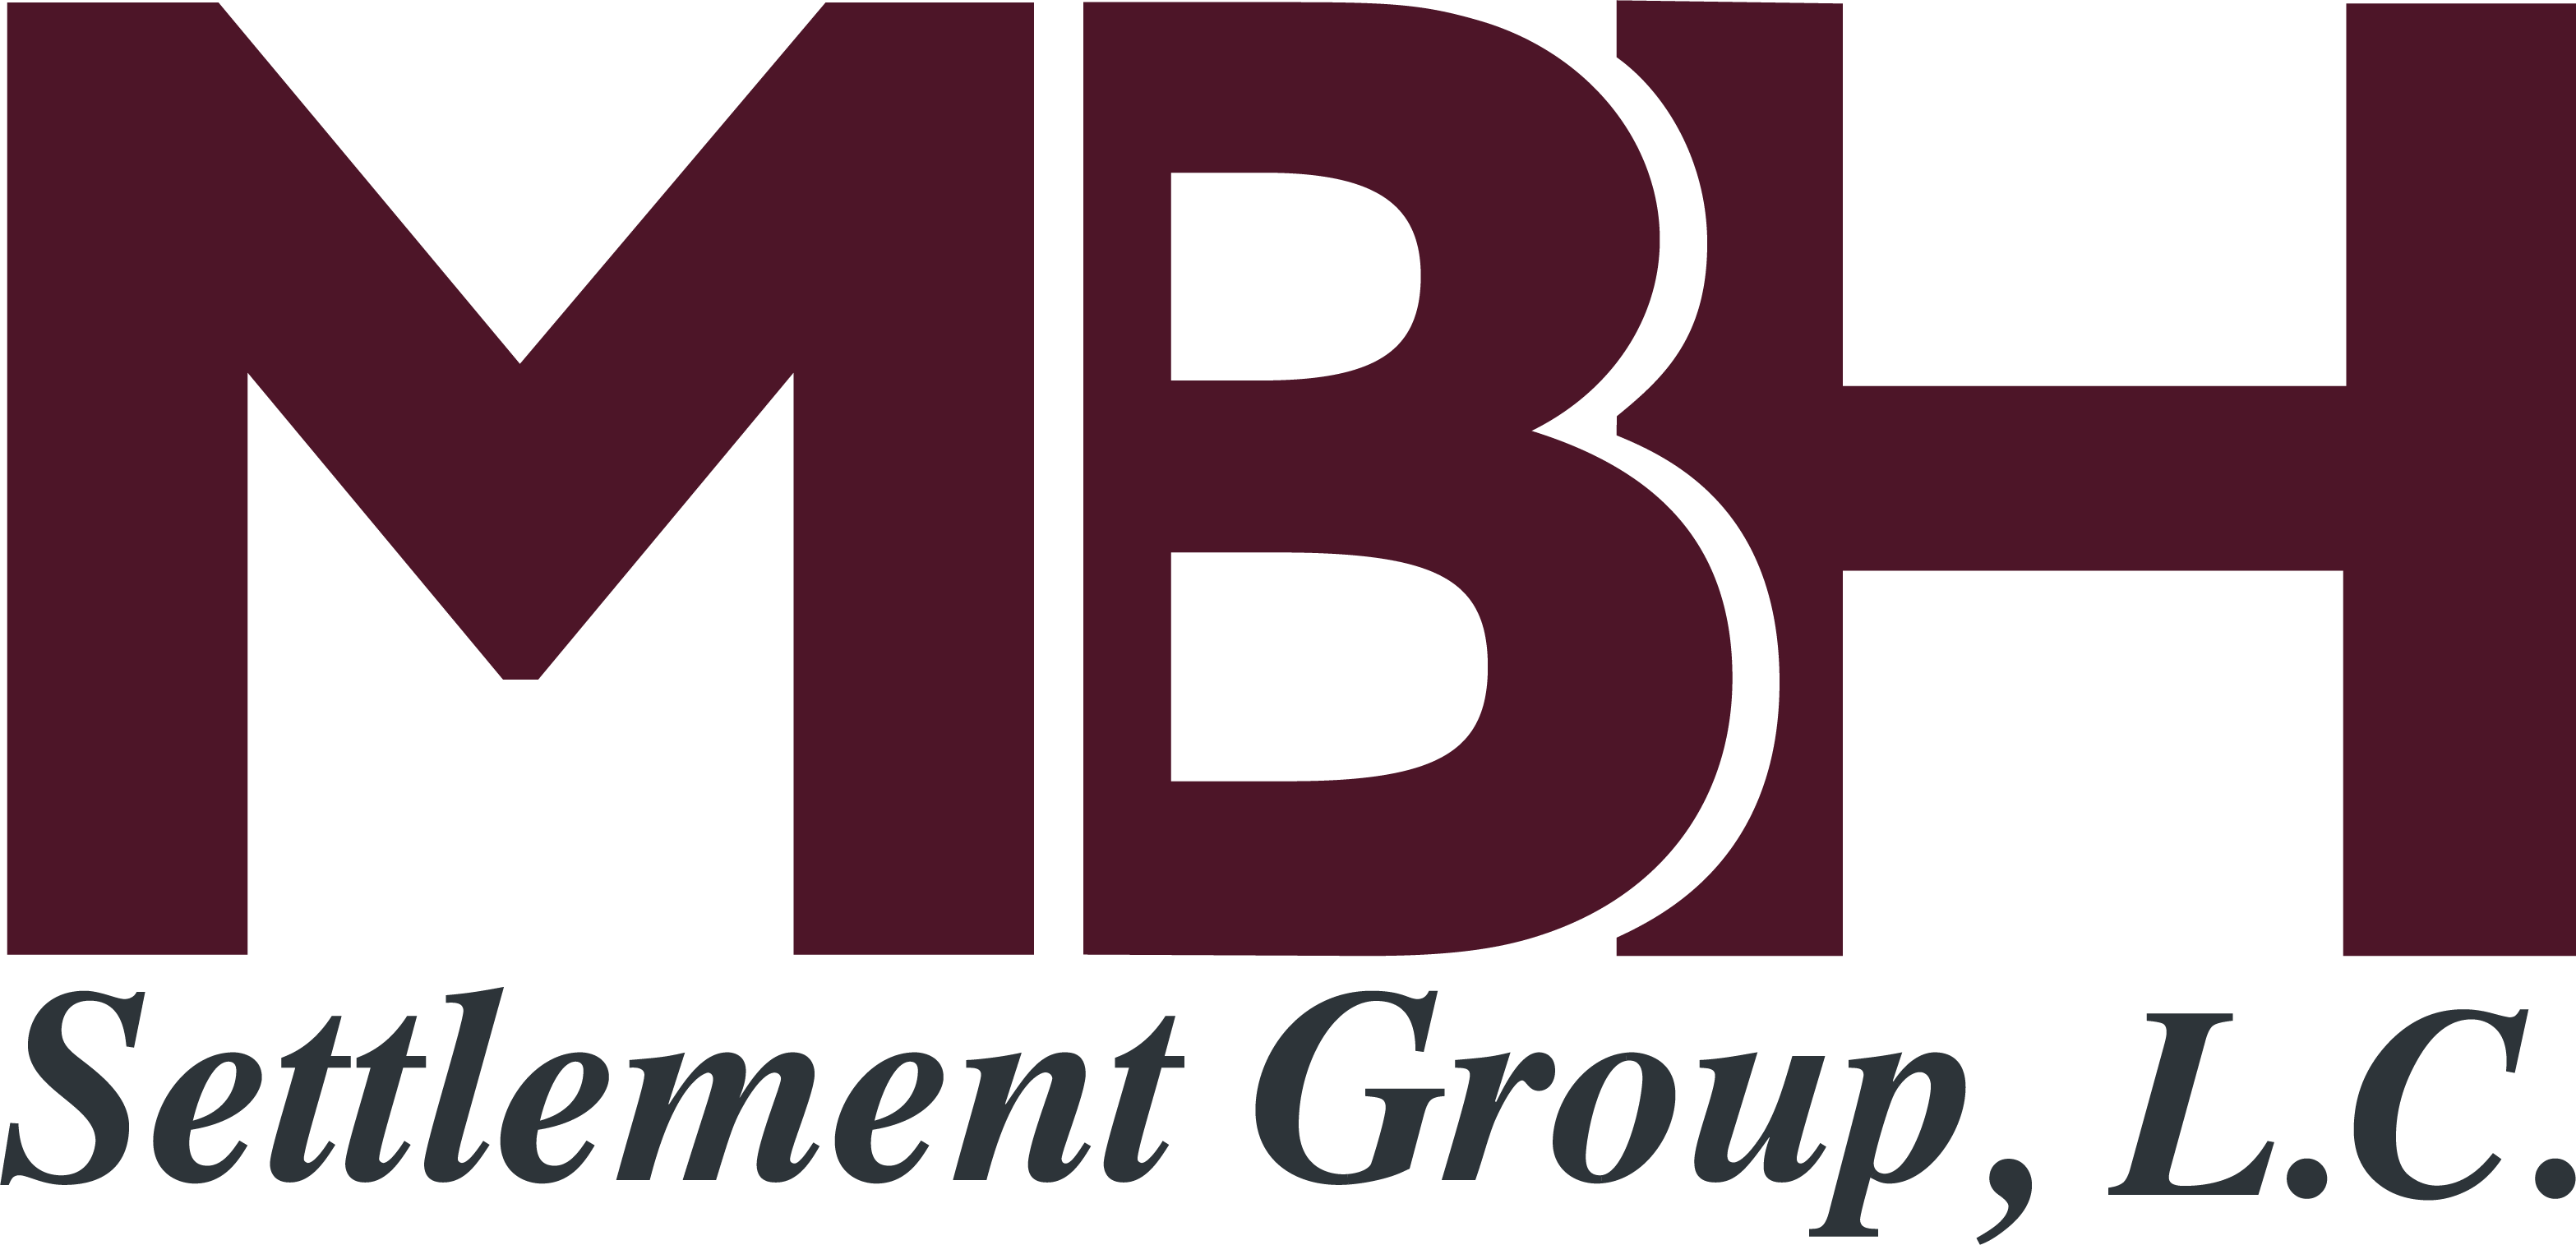 MBH Settlement Group, LC of Fredericksburg